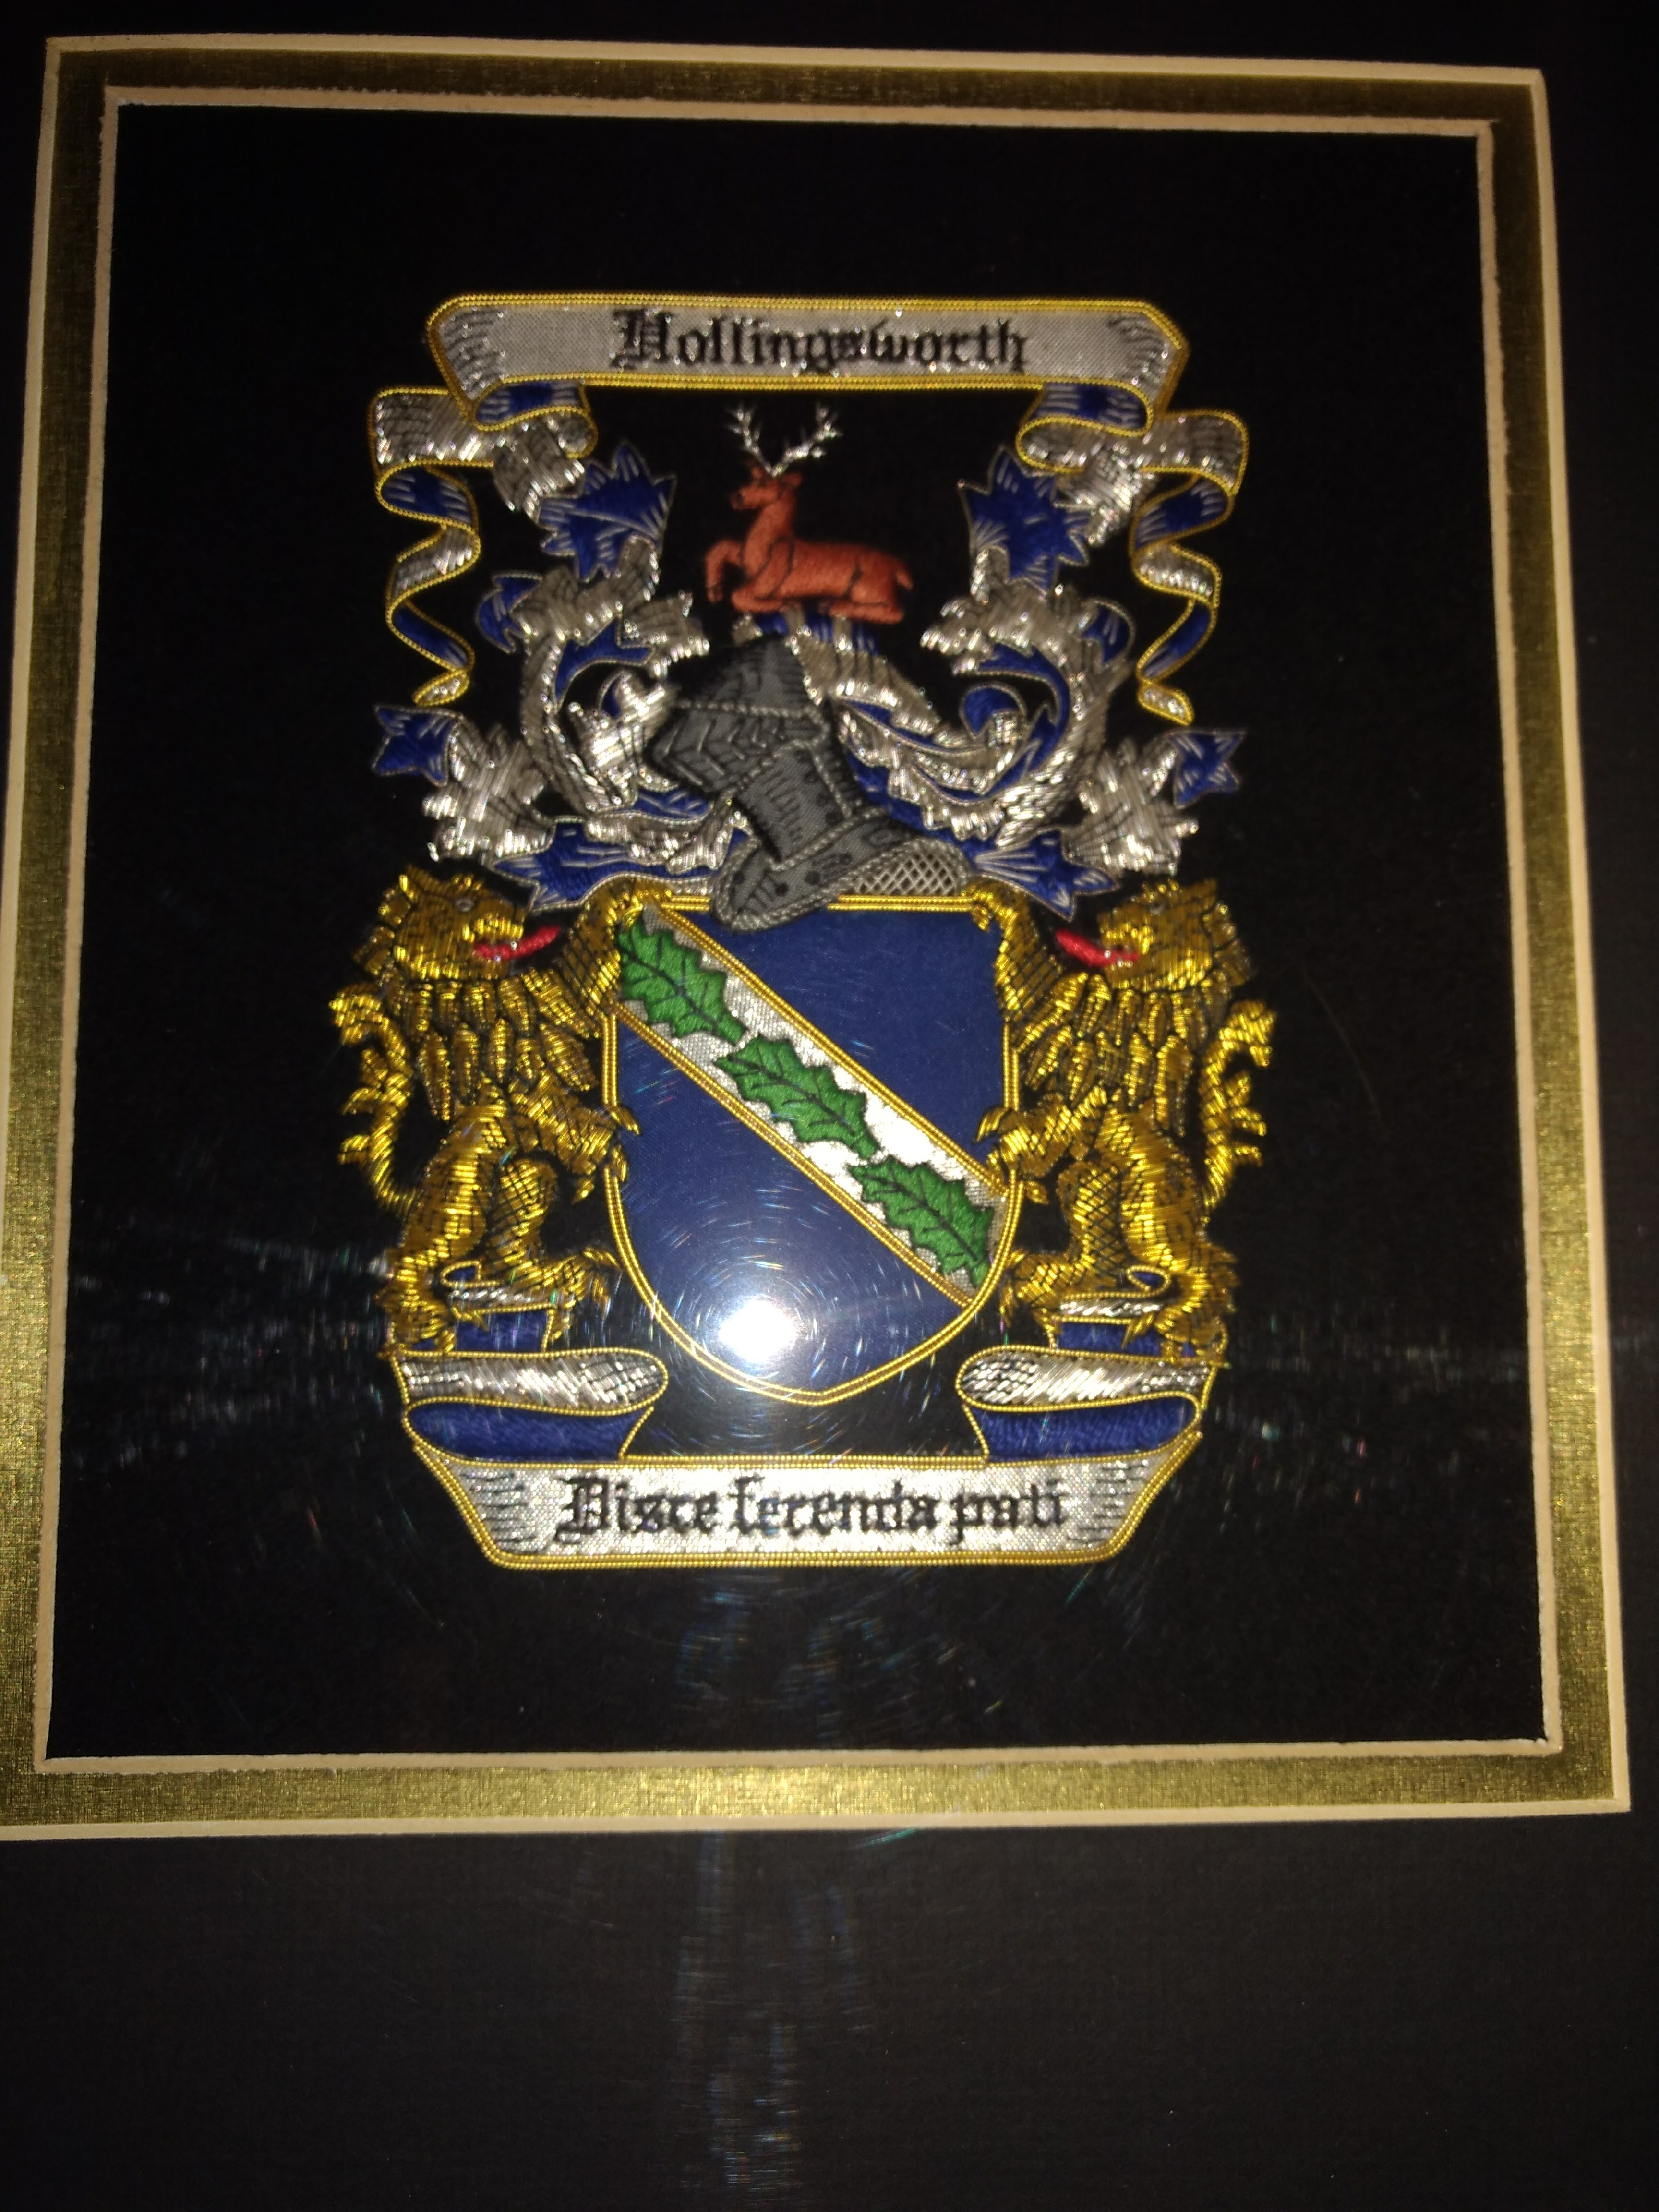 Why do we need a family motto